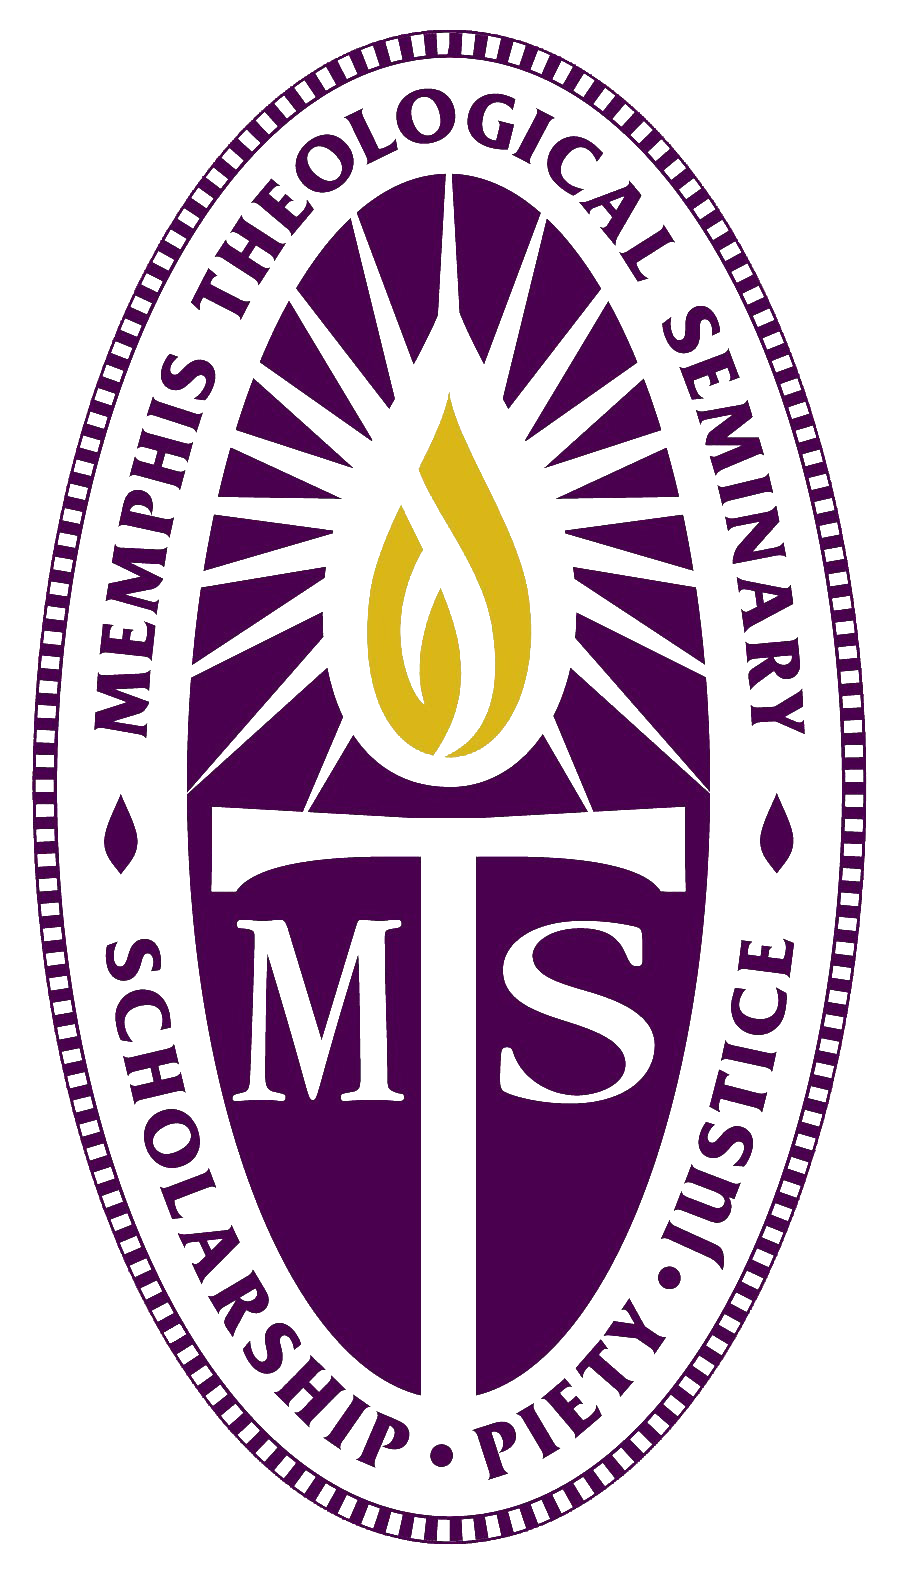 Memphis Theological Seminary